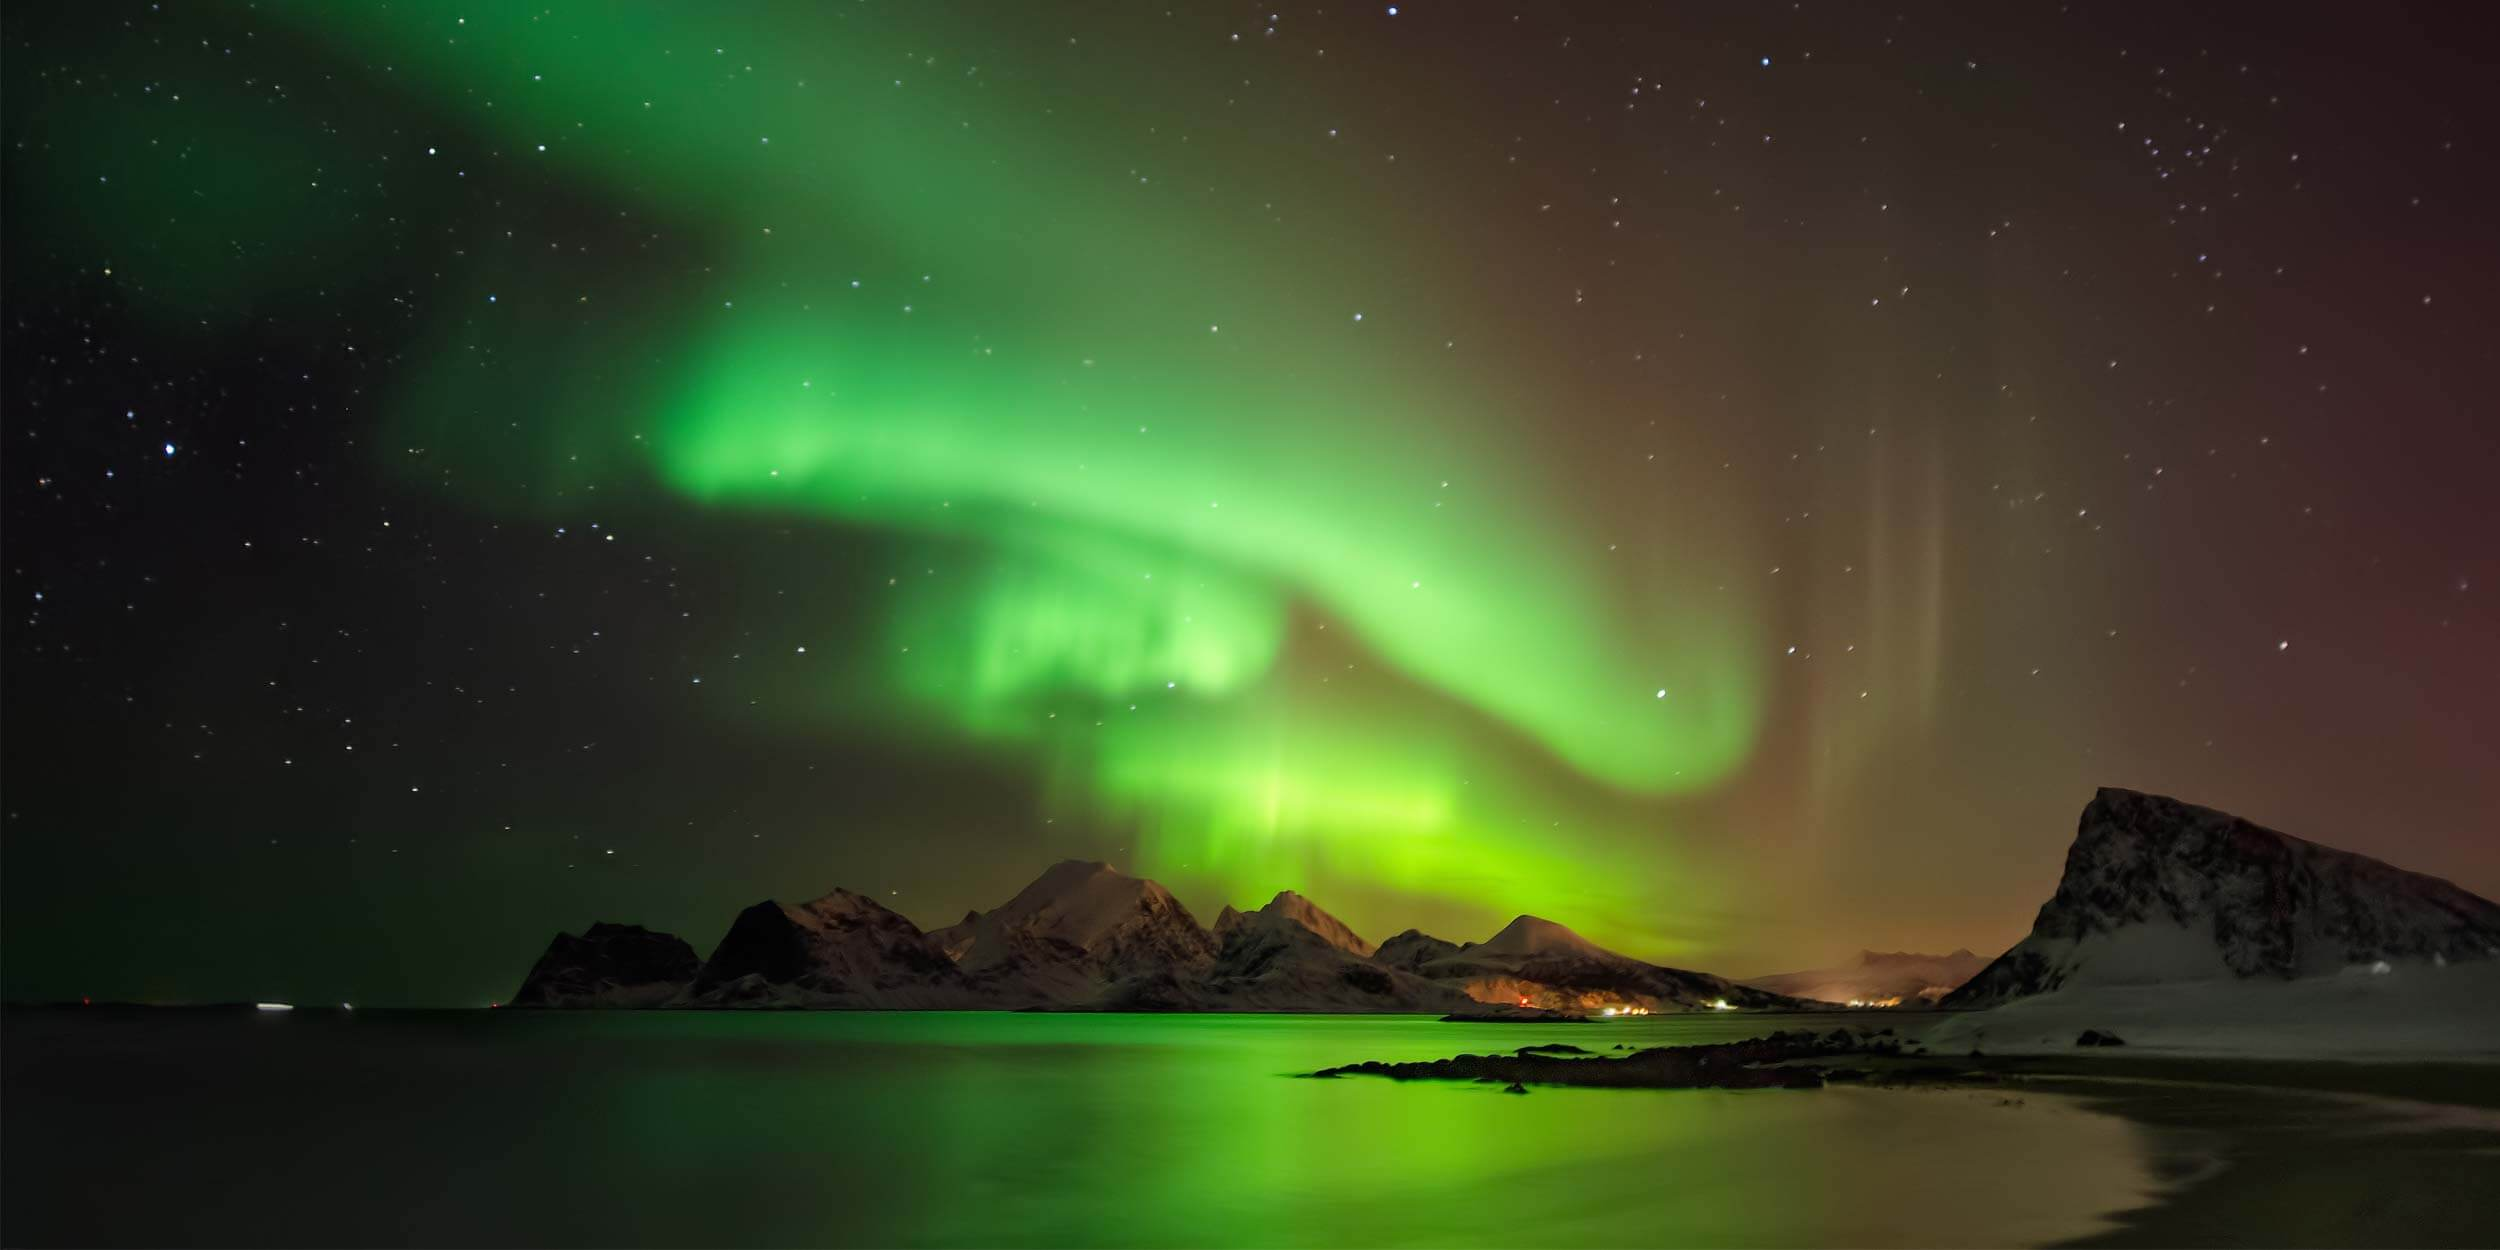 the northern lights frequently